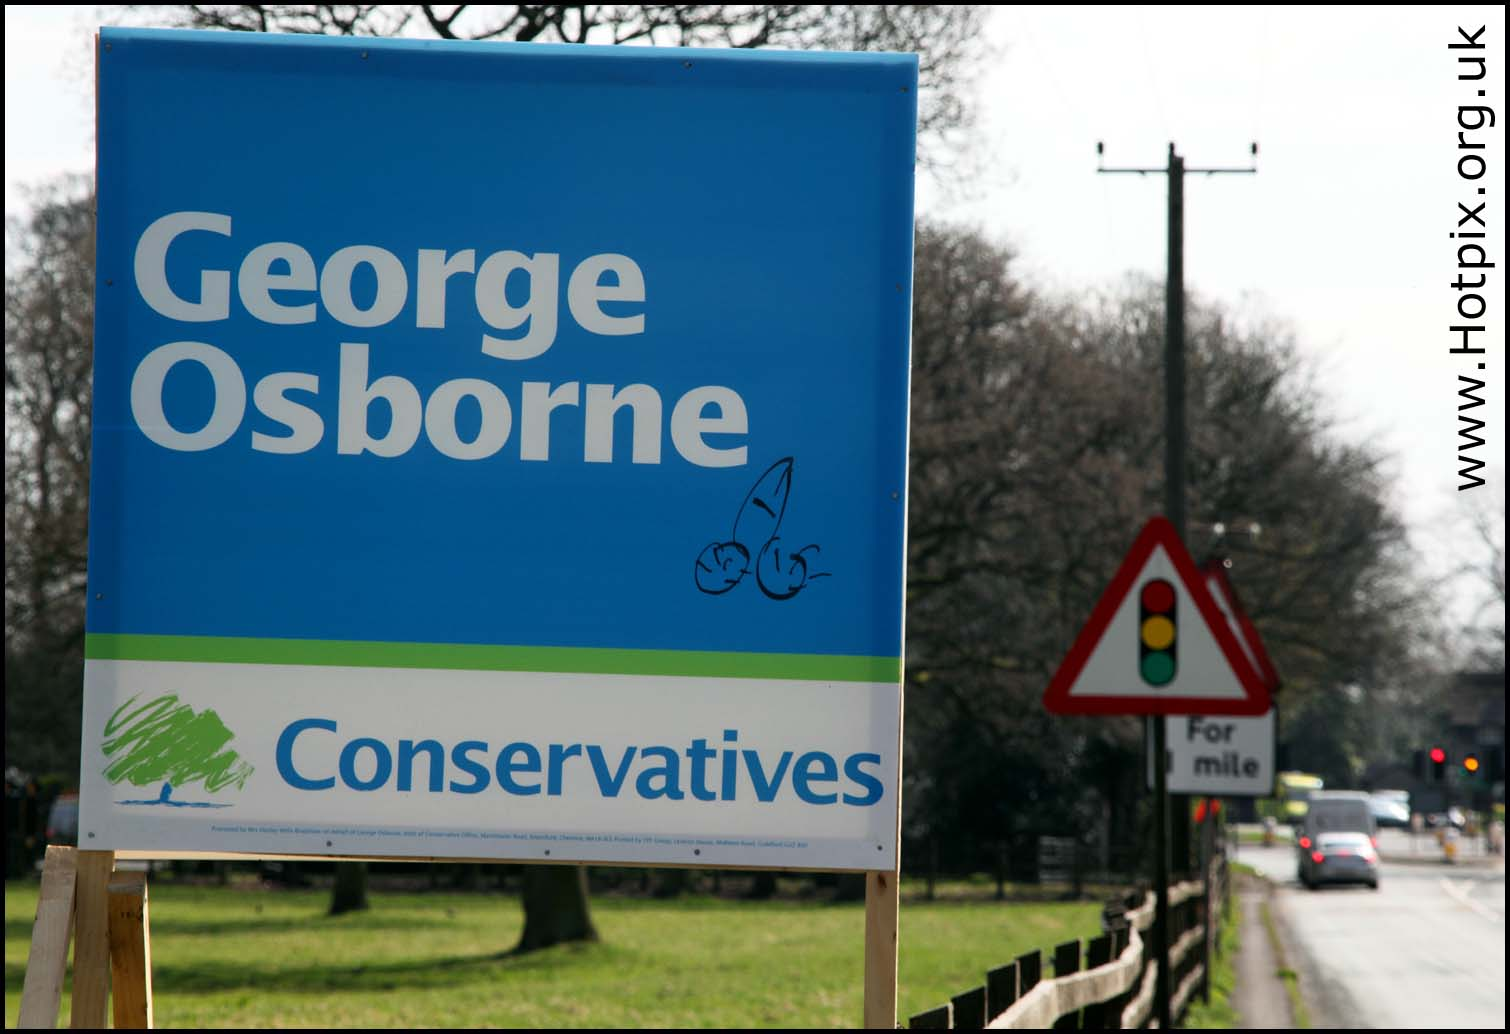 george,osbourne,chancellor,shadow,opposition,manchester,UK,tatton,knutsford,tory,candidate,conservative,sign,general,election,2010,may,6th,true,blue,majority,cheshire,electorial,parliament,westminster,government,britain,british,politition,politicion,politic,politics,taton,graffitti,grafitti,graffiti,graffittied,street,art,Labour,Liberal,Democrats,Green,Party,libdems,lib,dems,Hotpicks,hotpics,hot,pics,pix,picks,politician,hotpix!